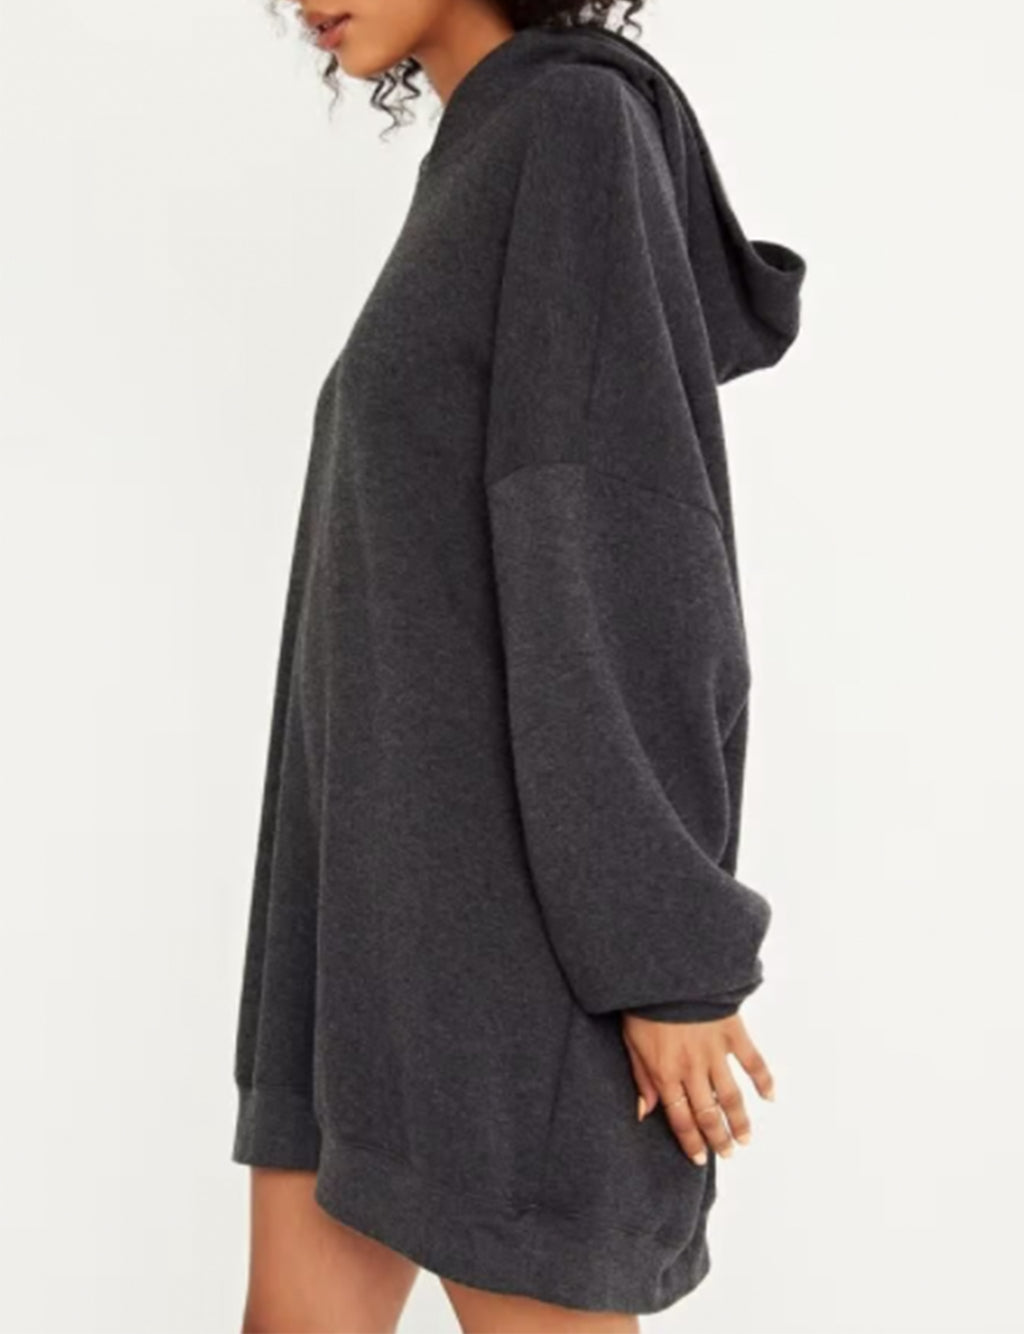 Everything Oversized Hoodie in Charcoal